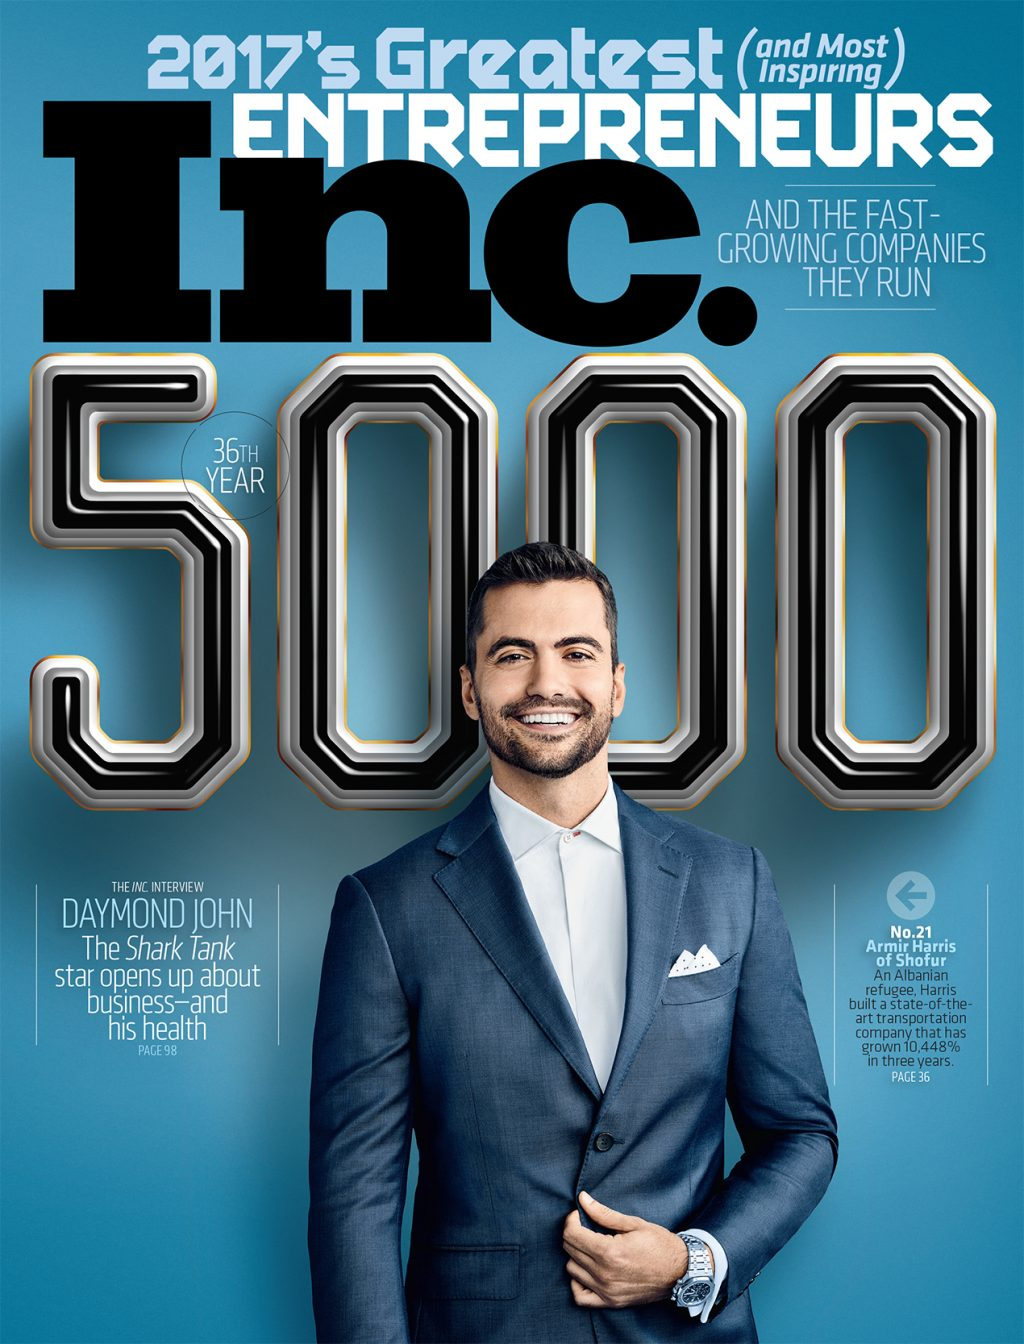 Cariloha Makes Inc. 5000 List of America's Fastest-Growing Private Companies